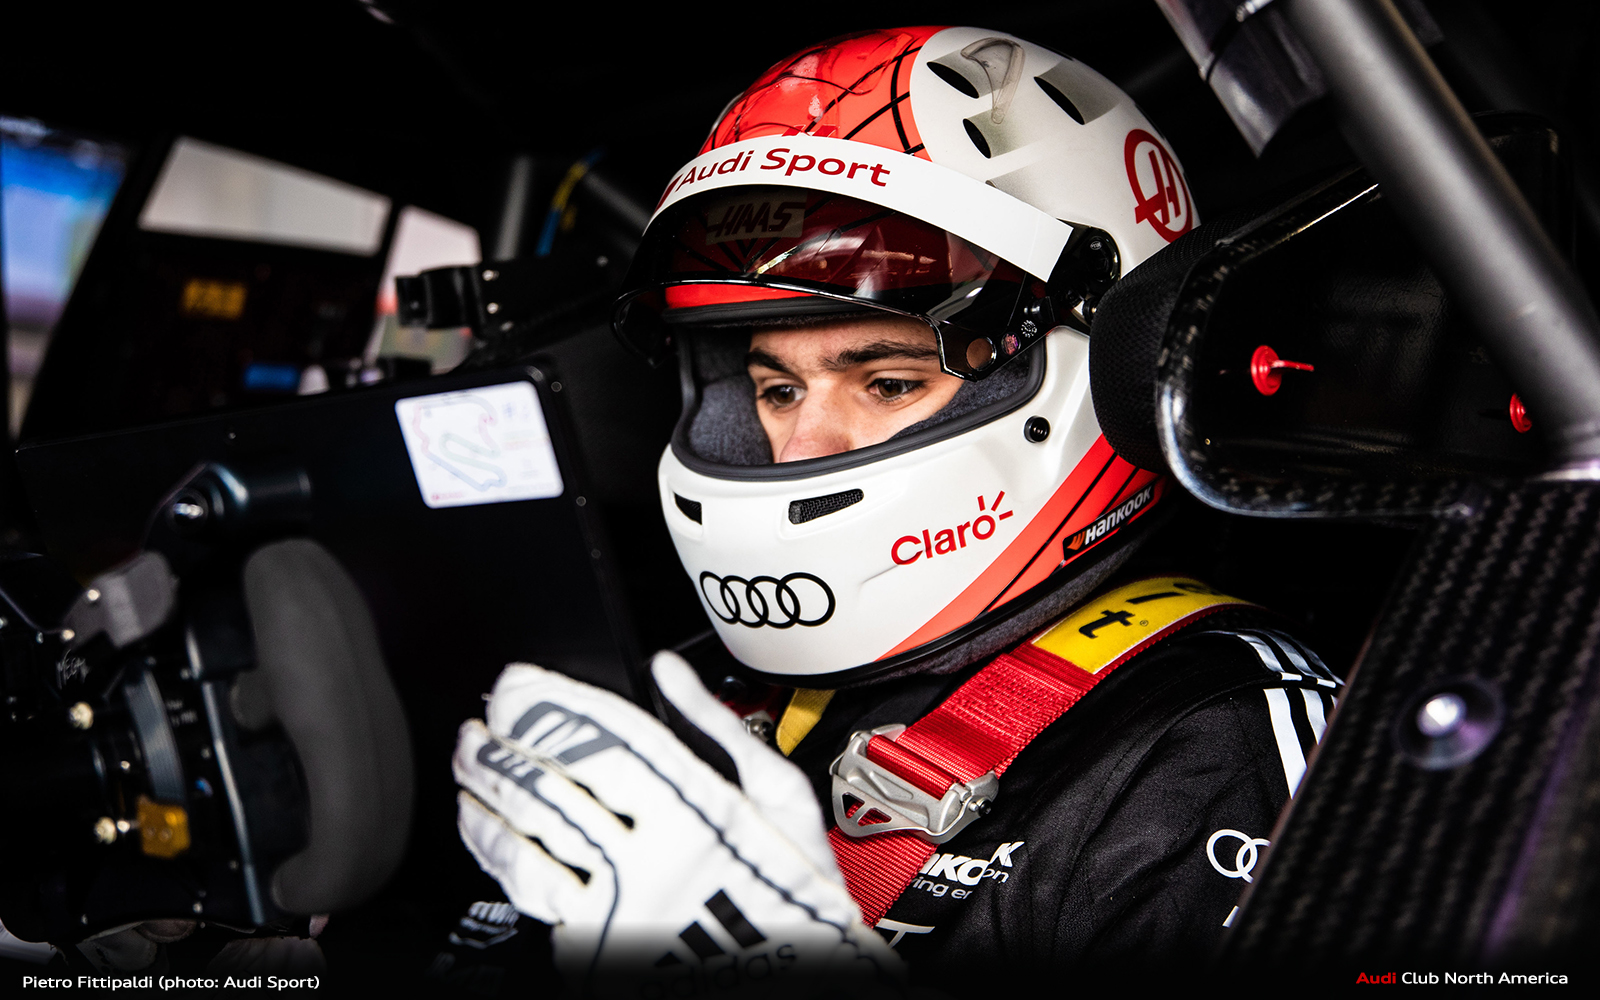 Appendicitis! Pietro Fittipaldi to replace Jamie Green in DTM at Misano